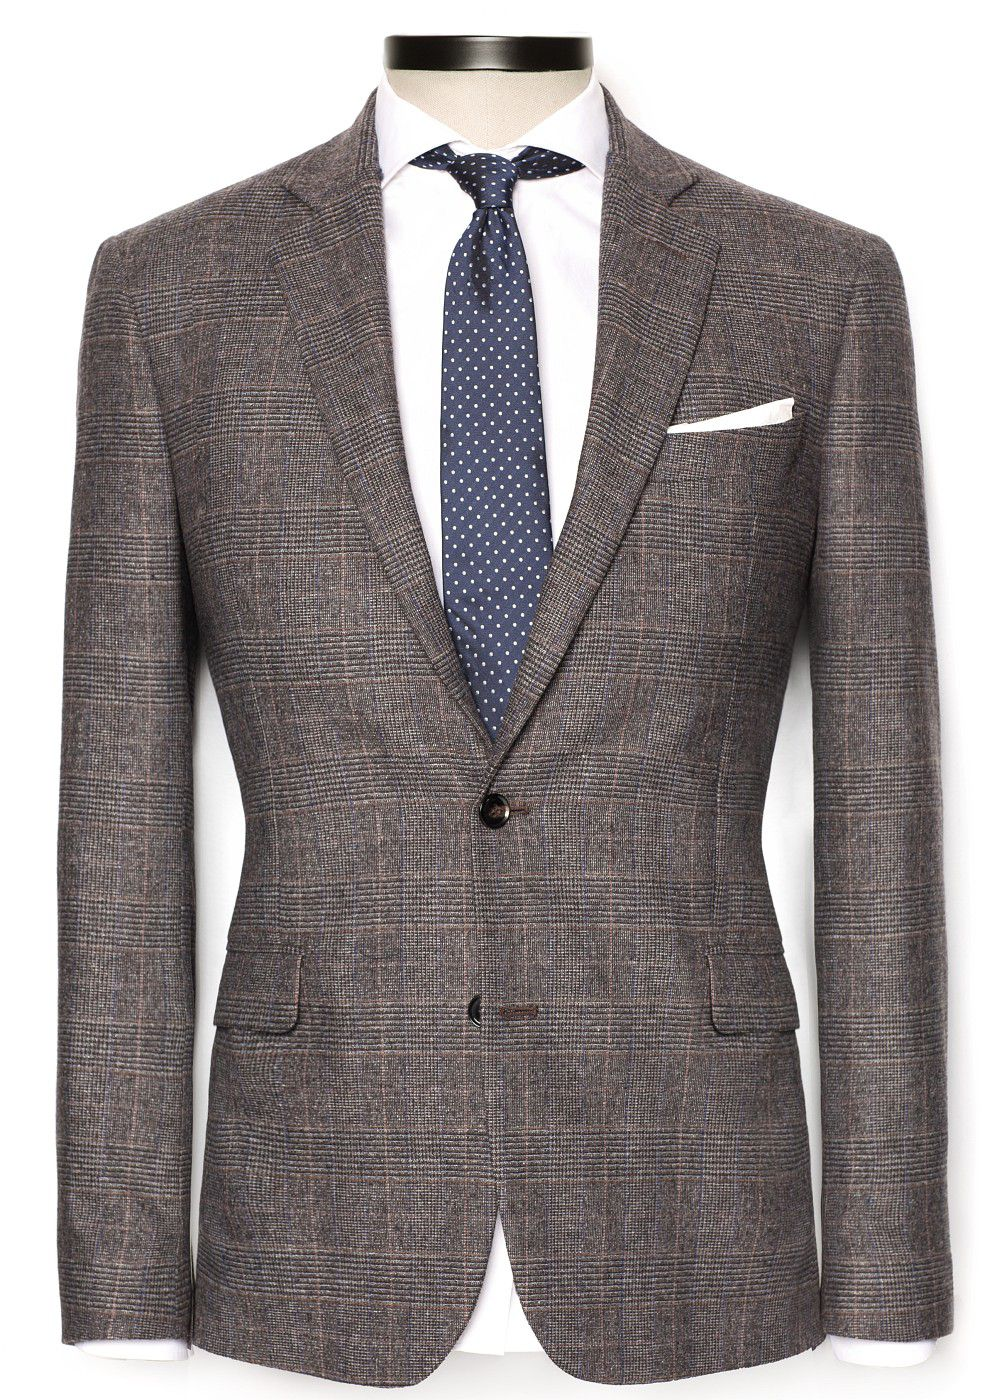 Prince of Wales suit blazer